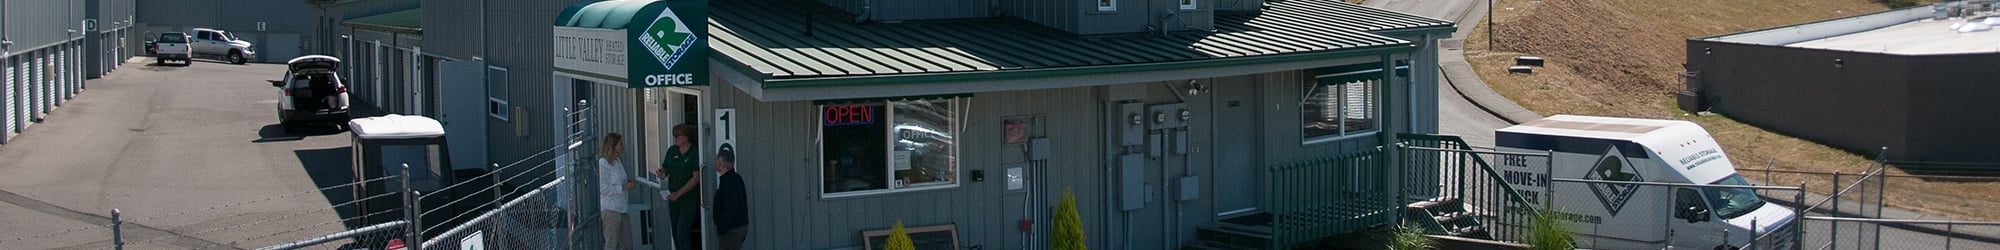 Contact us for your self storage needs in Poulsbo